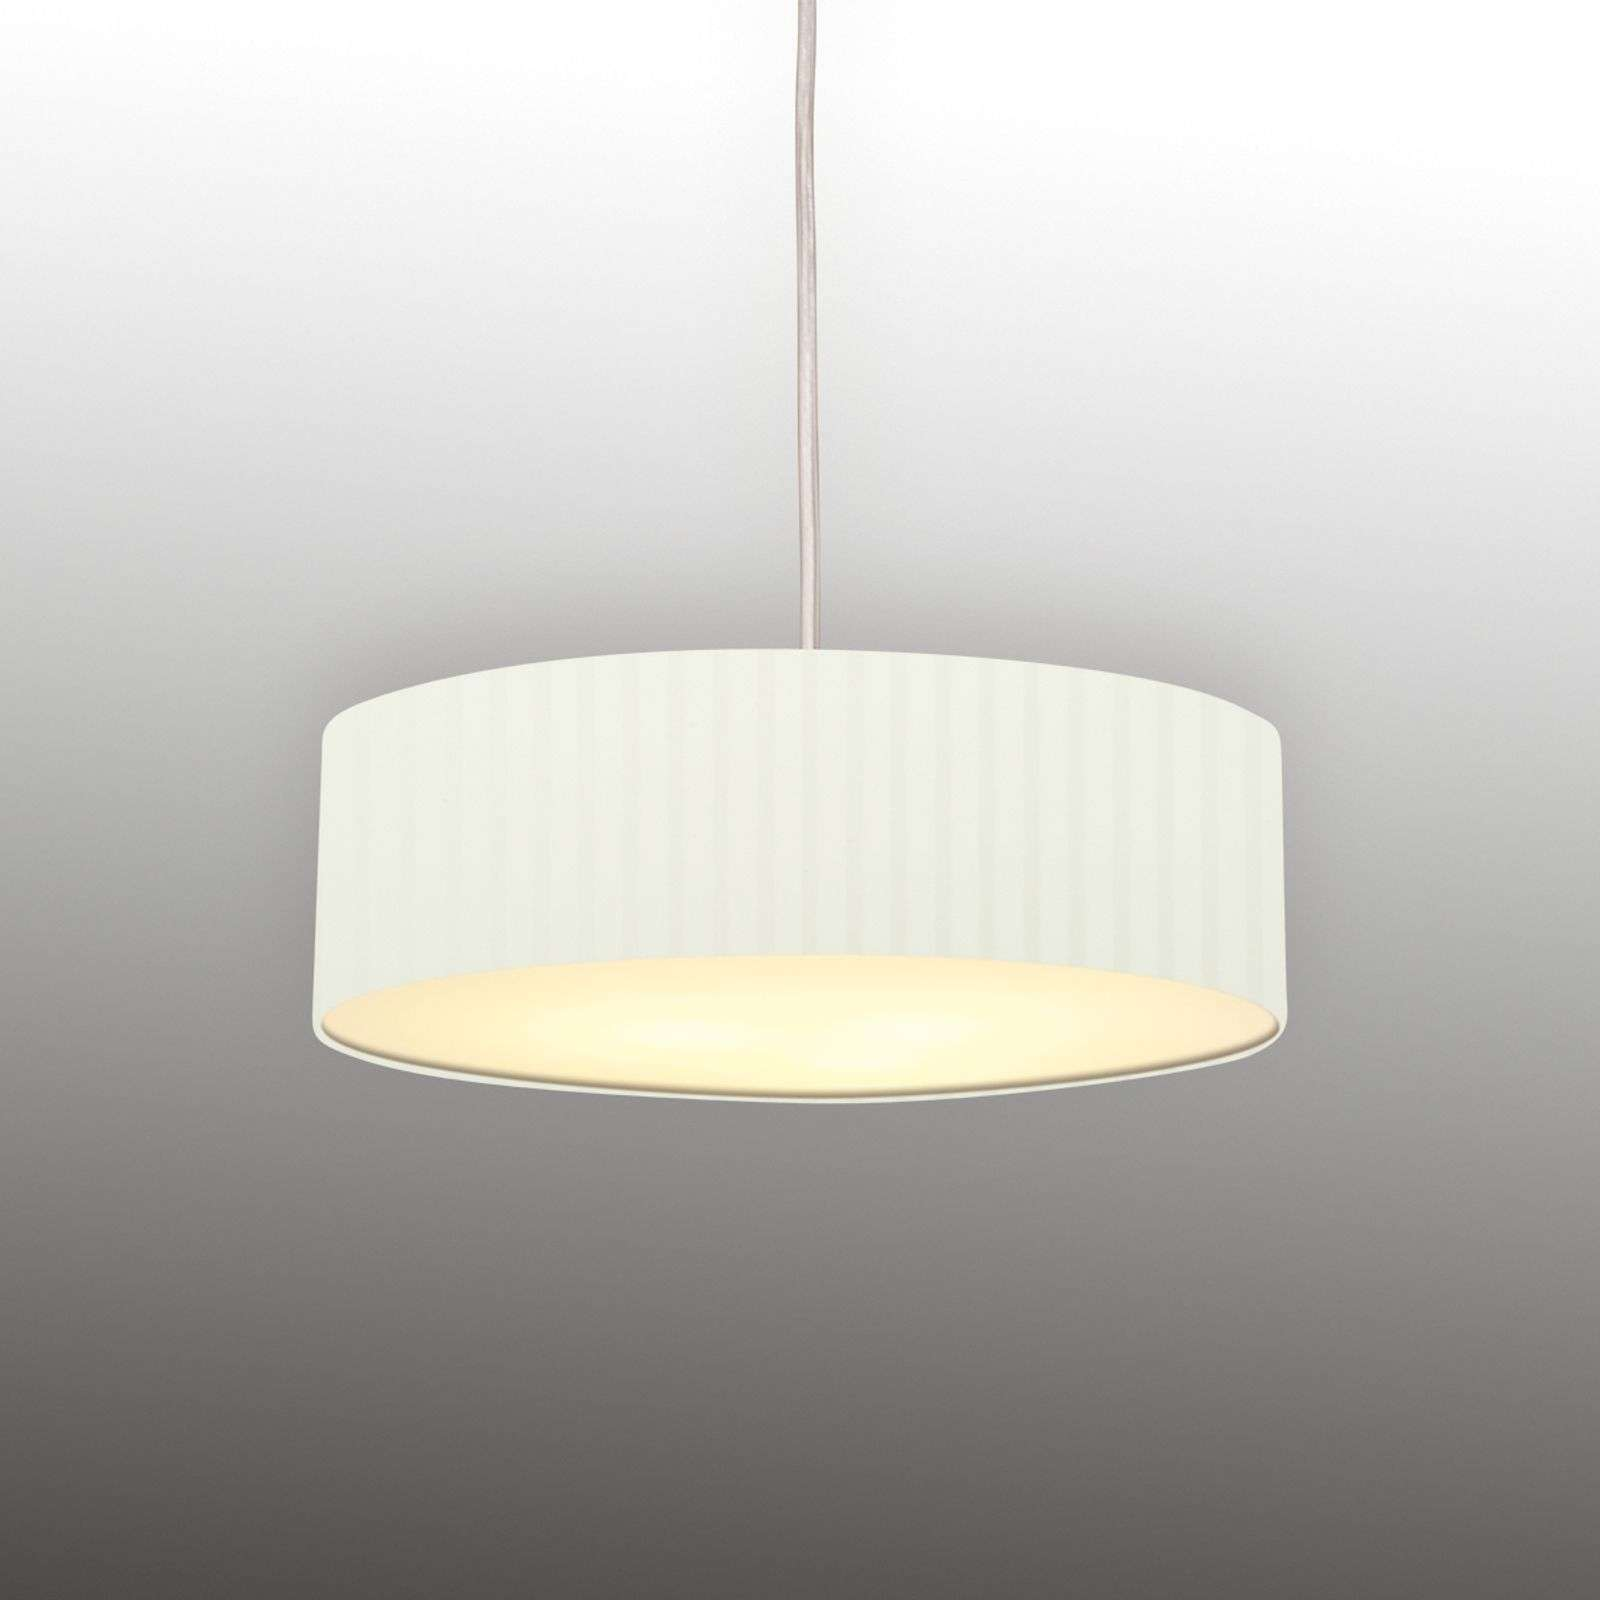 Benito - sfeervolle hanglamp 35 cm